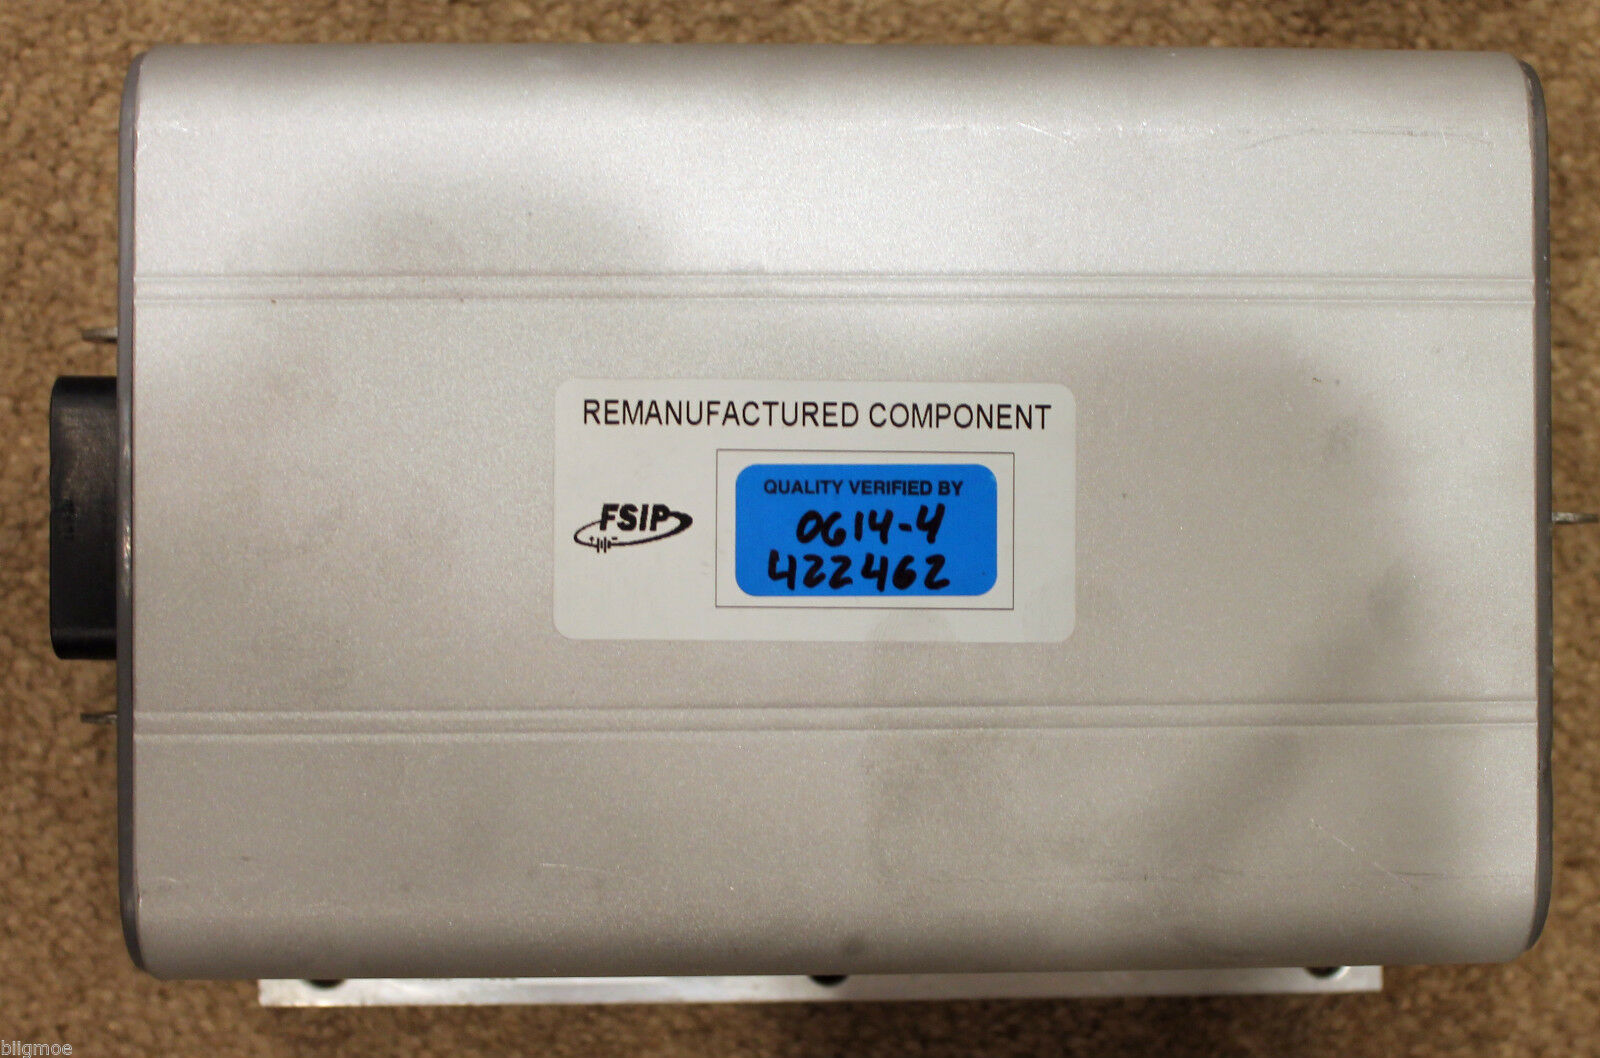 2002 Ford Think Motor Controller Rev 1 Golf Rolle Nev D1 T1 D2 T2 T4 Neighbor